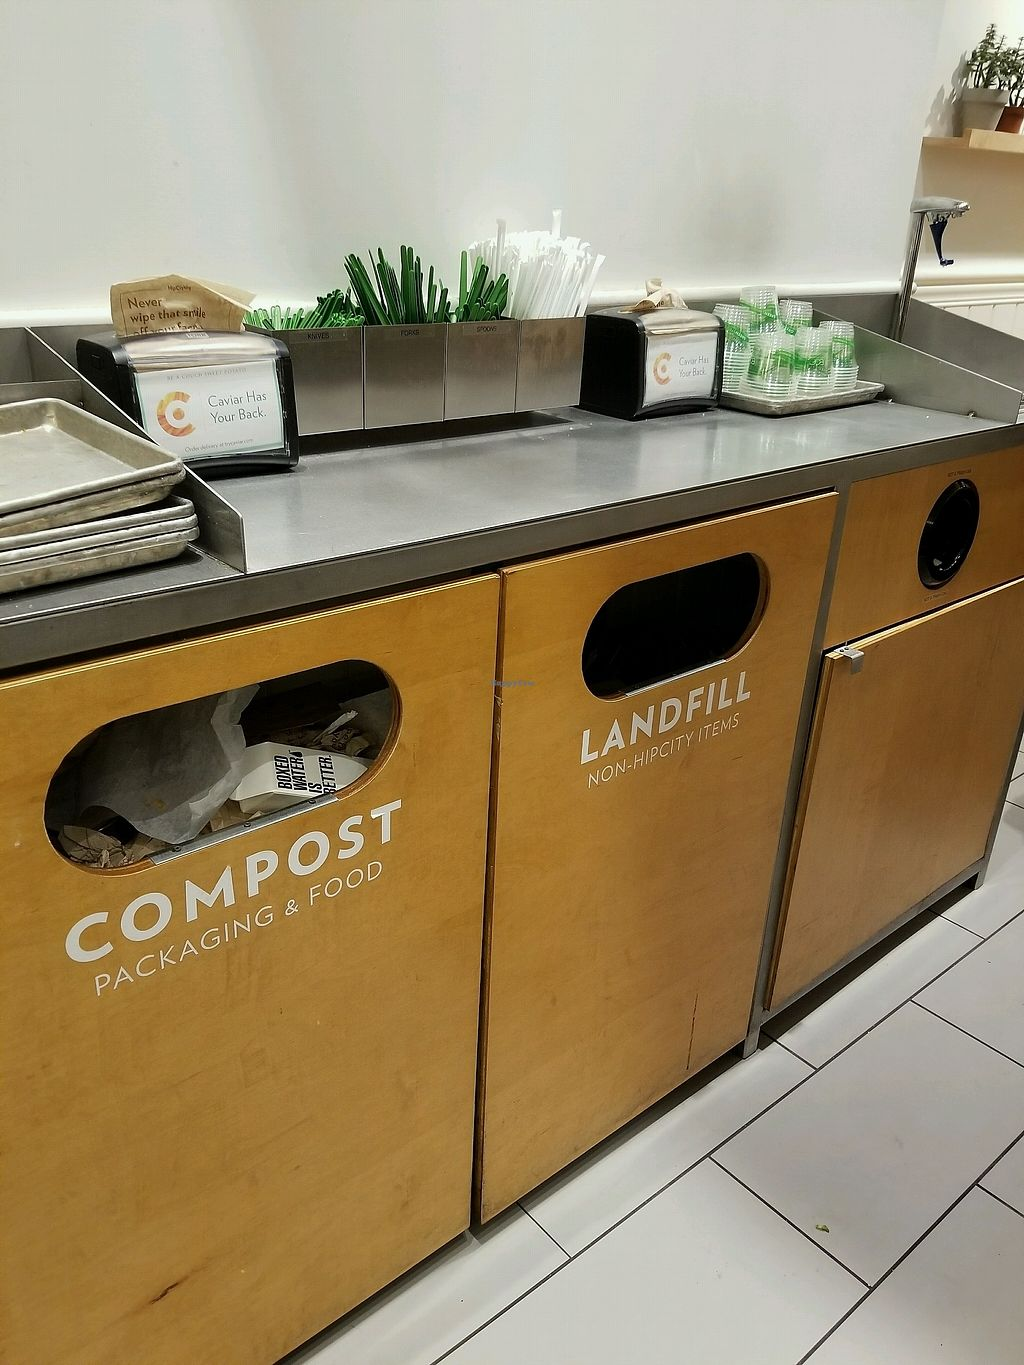 """Photo of HipCityVeg  by <a href=""""/members/profile/LolaBelle"""">LolaBelle</a> <br/>loved the separate rubbish bins for compost and landfill!  <br/> March 2, 2018  - <a href='/contact/abuse/image/74759/365874'>Report</a>"""